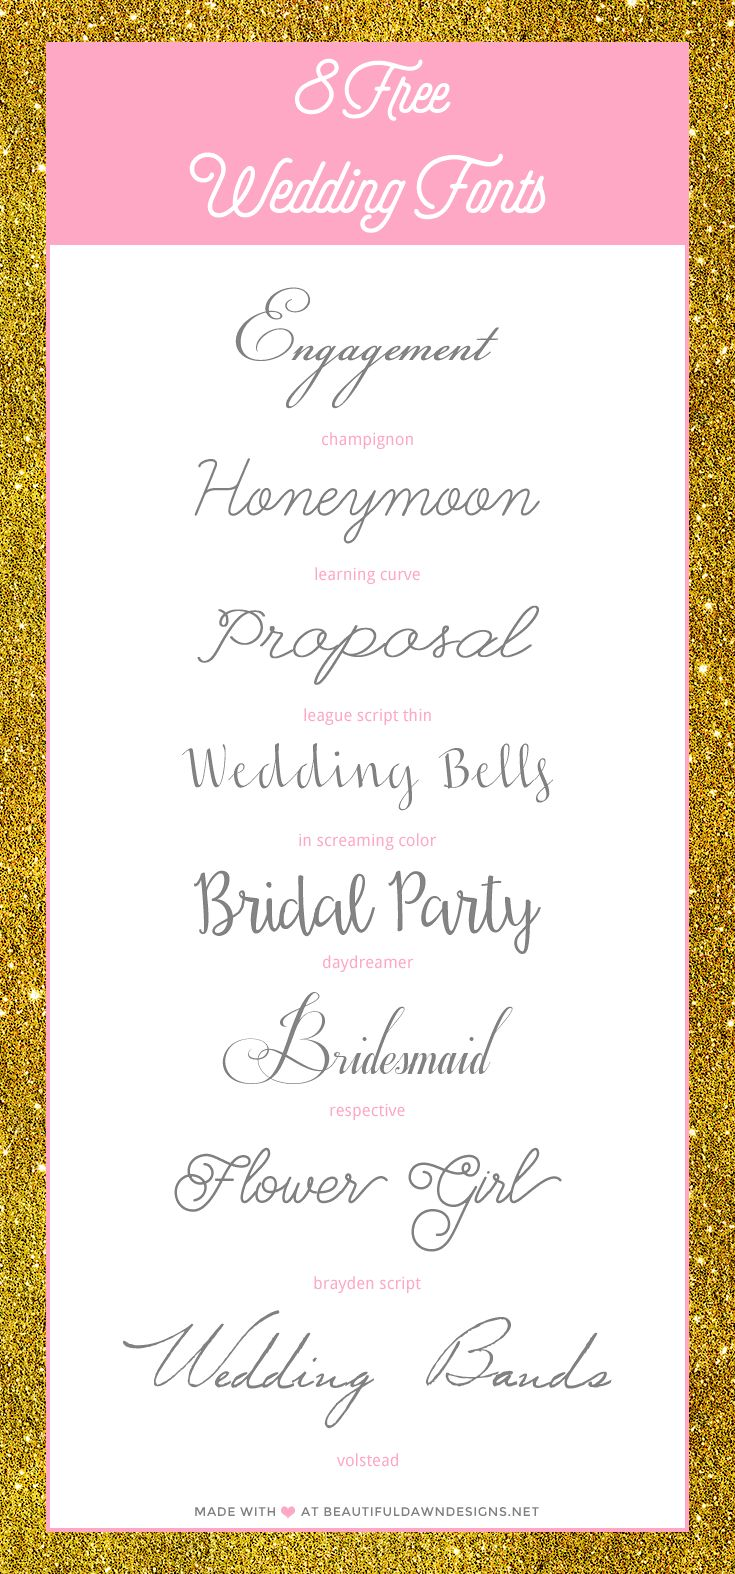 Best 25+ Cricut wedding invitations ideas on Pinterest ...